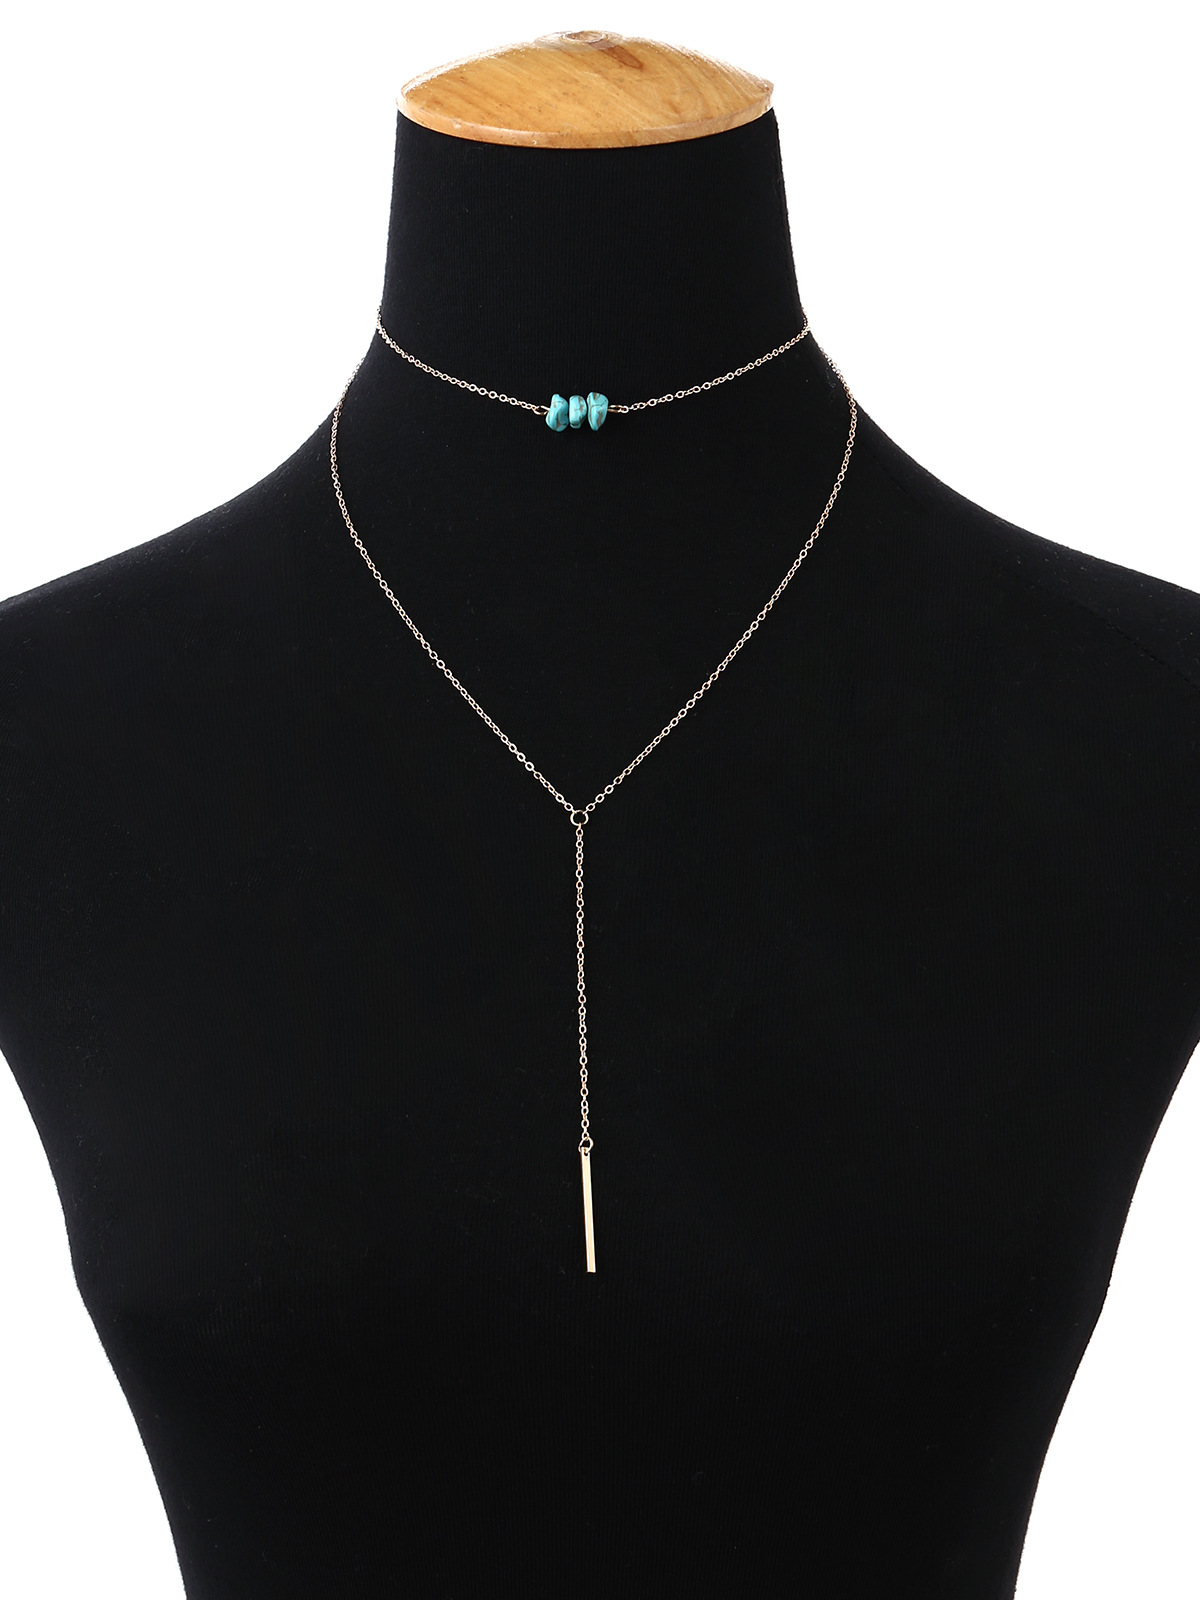 Fashion Alloy plating necklace Geometric (Gold 1639)NHXR1651-Gold 1639